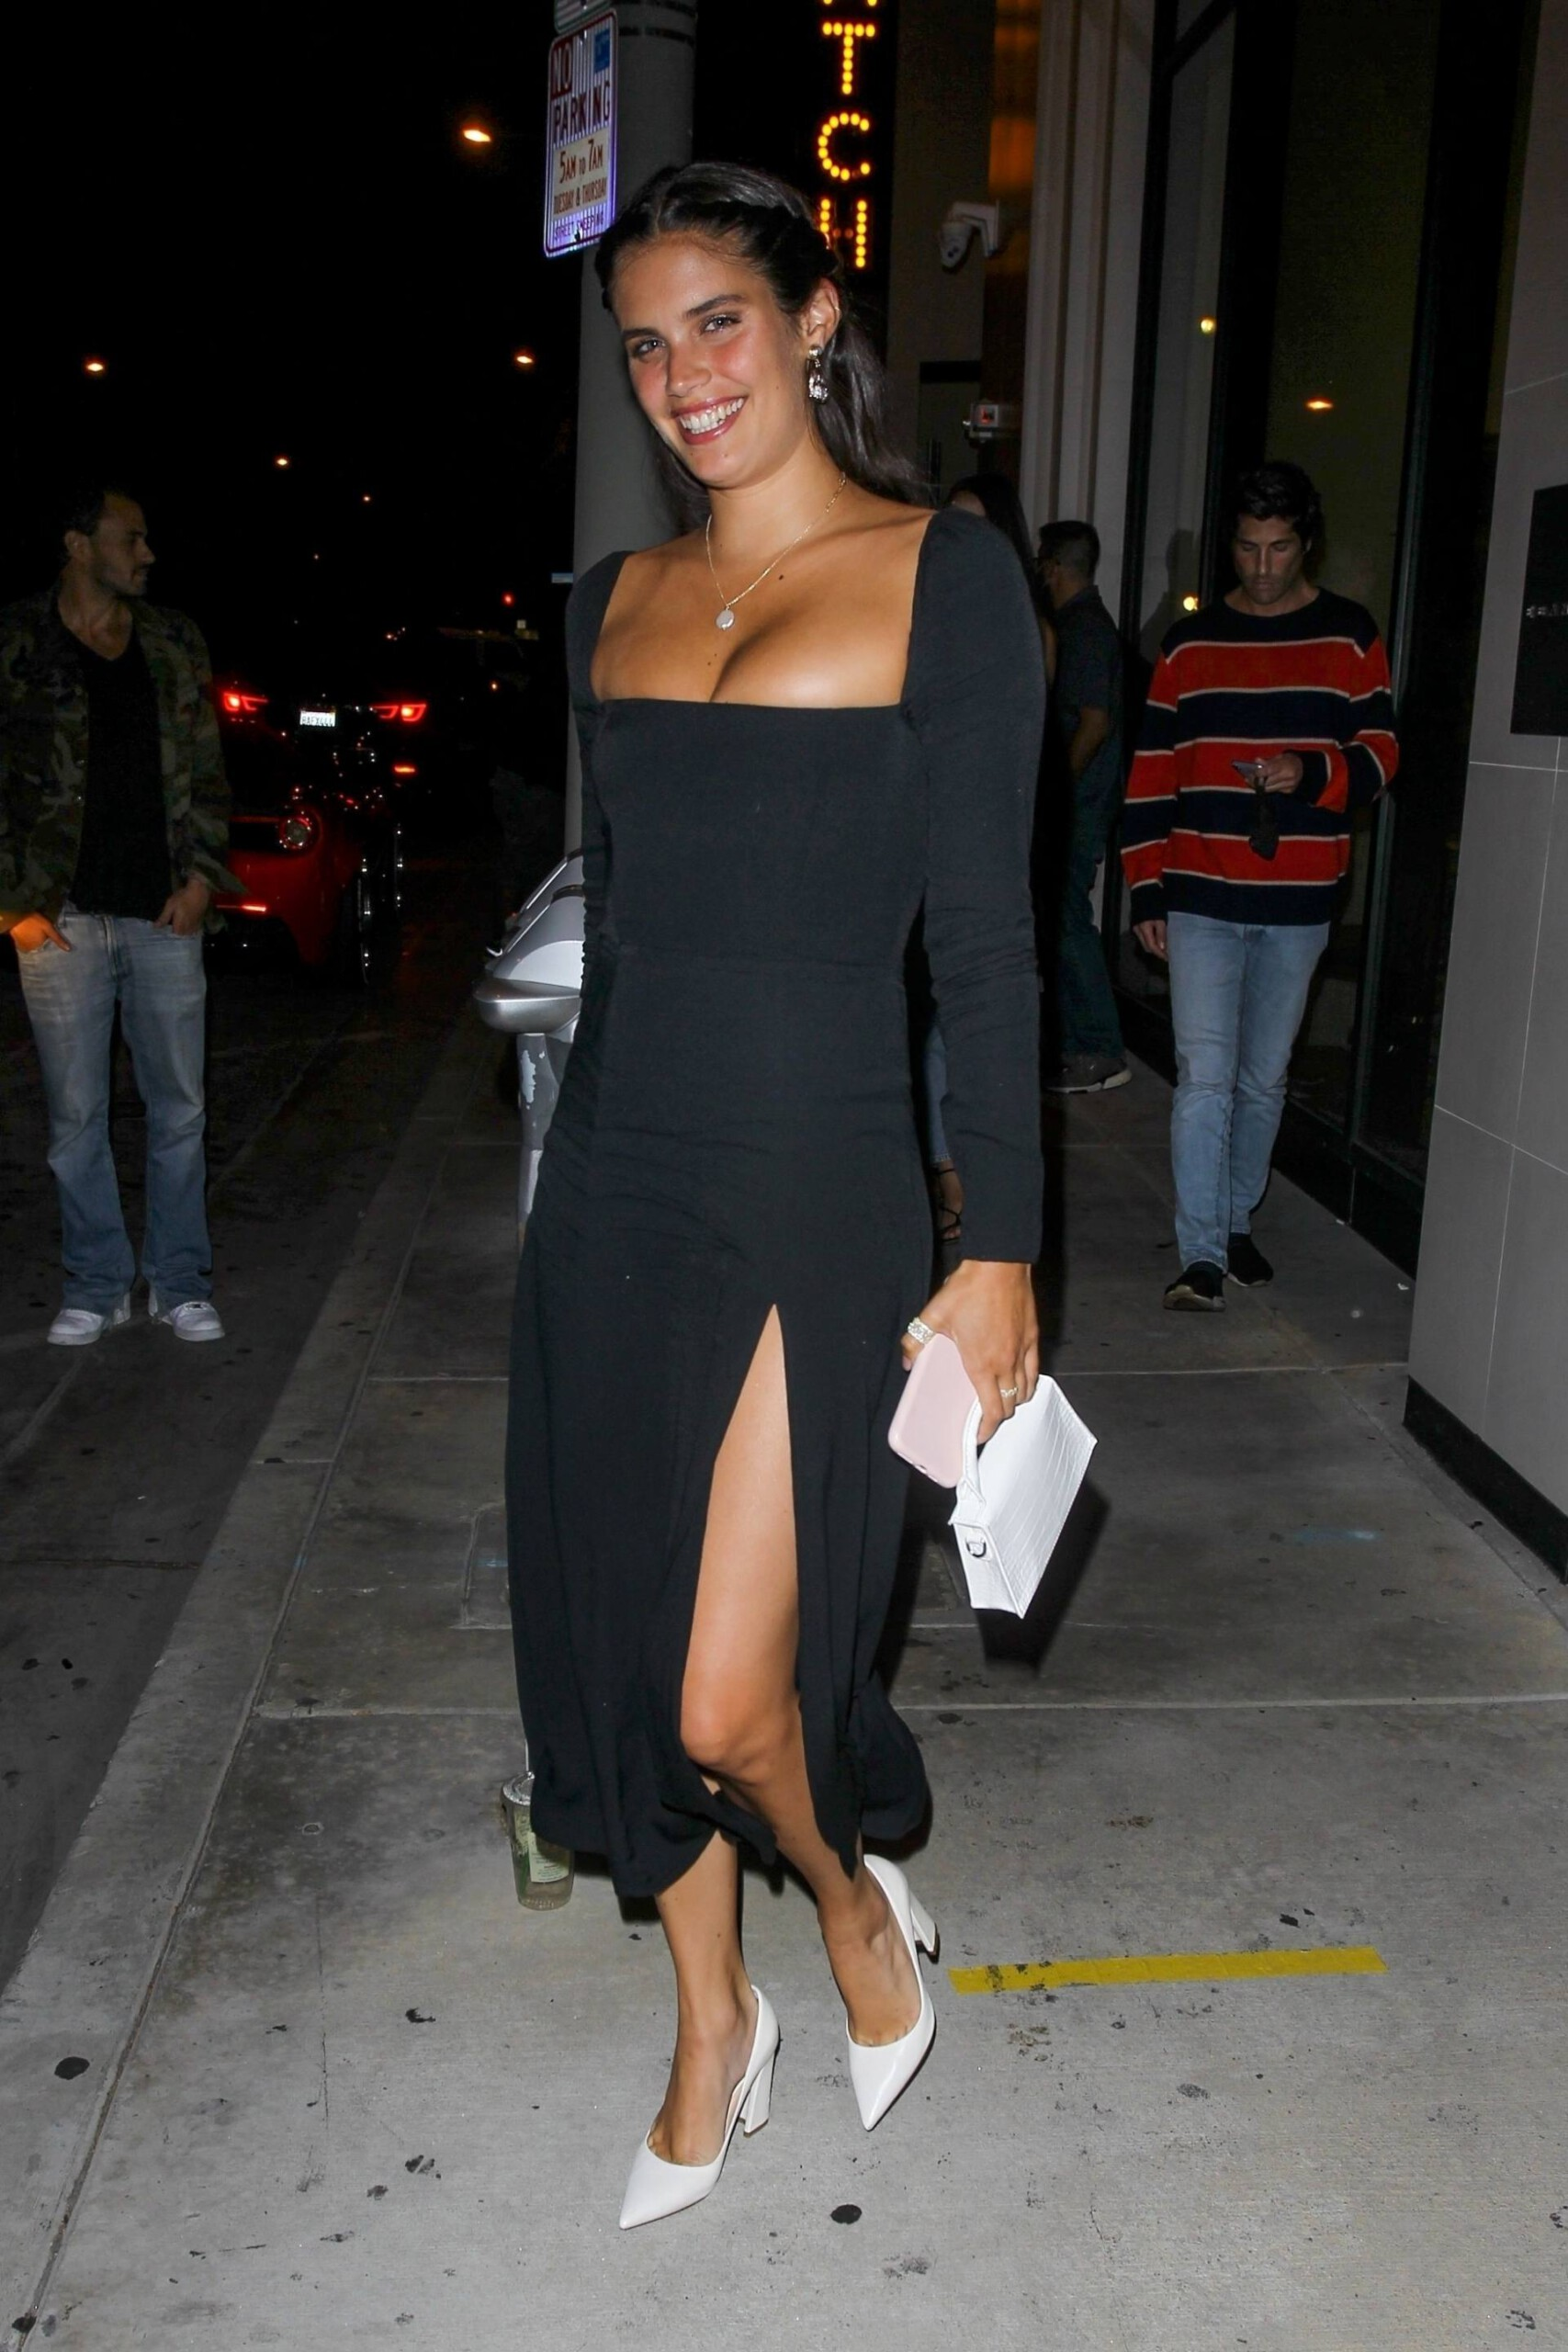 Sara Sampaio – Beautiful In Sexy Black Dress At Catch Restaurant In West Hollywood 0014